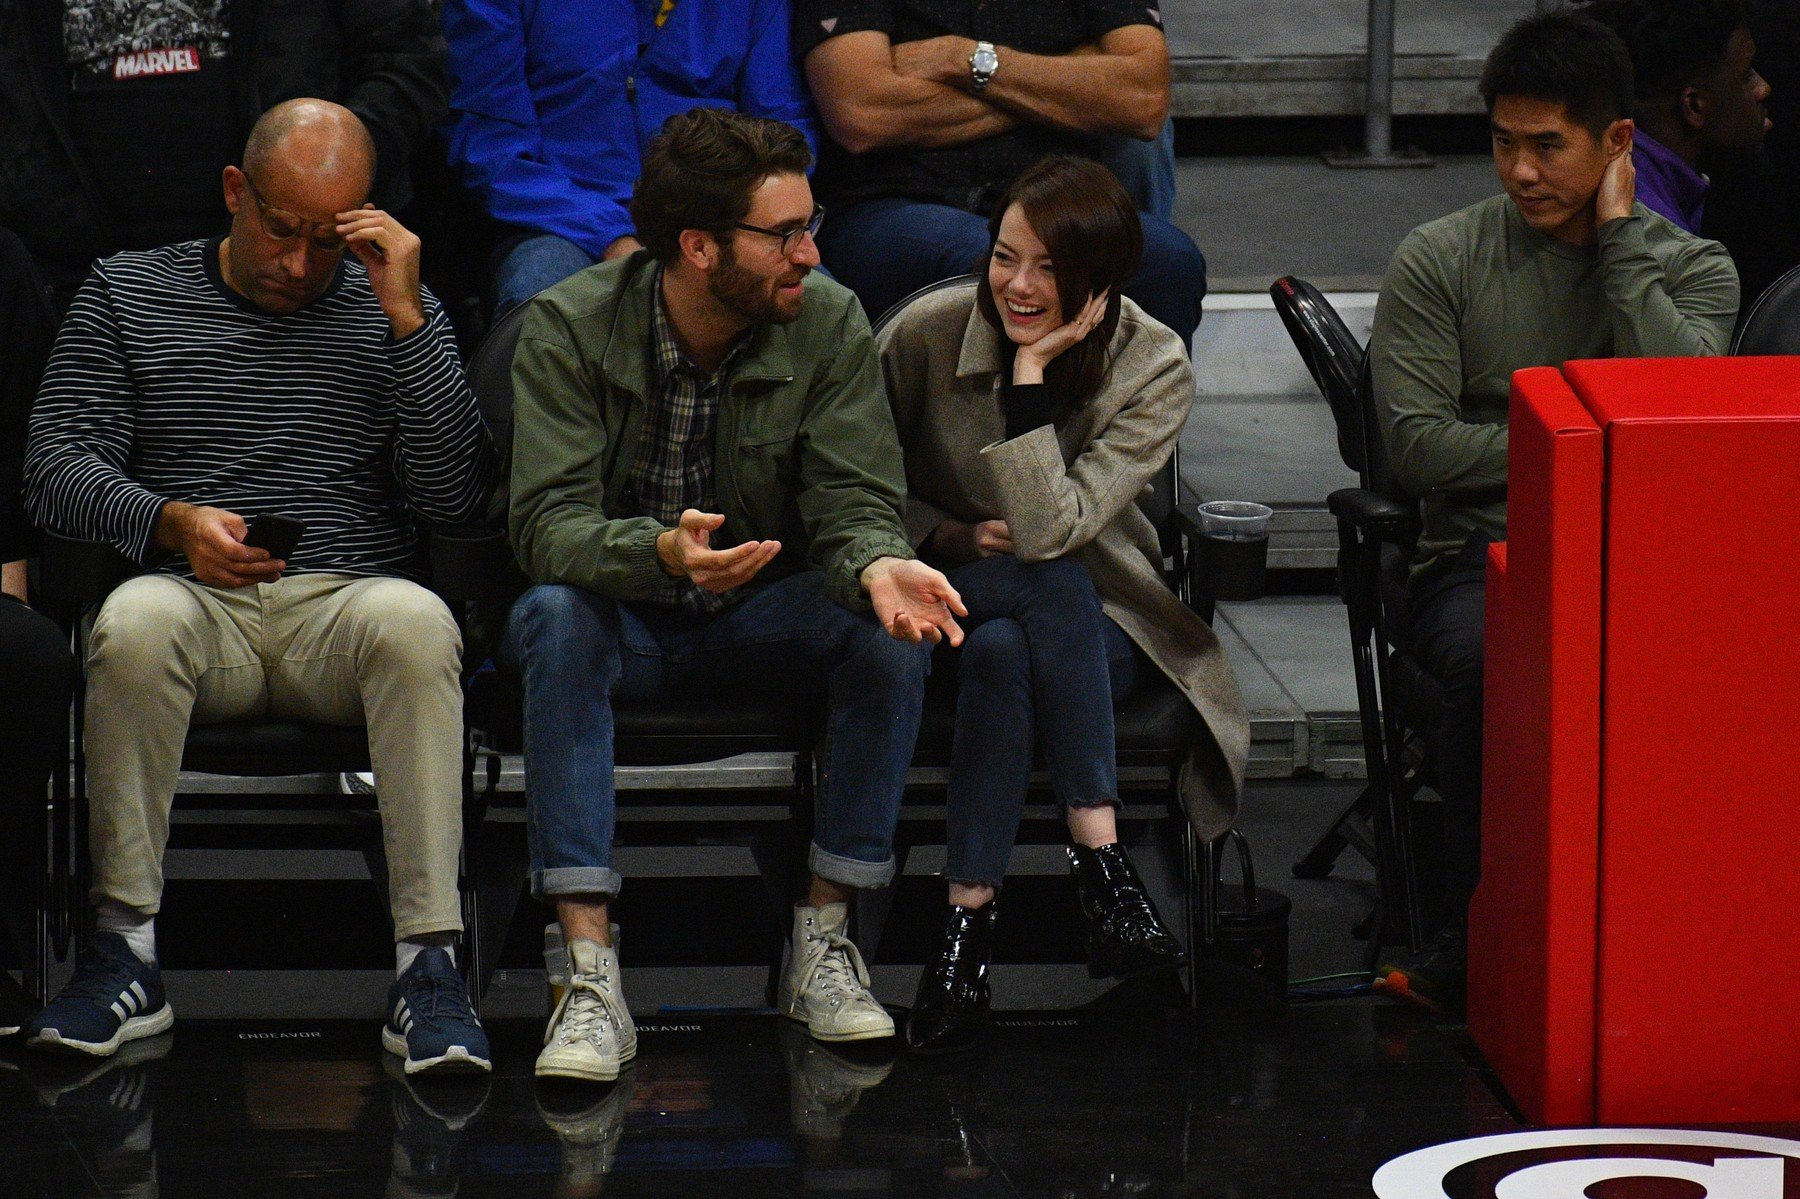 LOS ANGELES, CA - JANUARY 18: Actress Emma Stone and her boyfriend Dave McCary look on during a NBA game between the Golden State Warriors and the Los Angeles Clippers on January 18, 2019 at STAPLES Center in Los Angeles, CA., Image: 408646824, License: Rights-managed, Restrictions: FOR EDITORIAL USE ONLY. Icon Sportswire (A Division of XML Team Solutions) reserves the right to pursue unauthorized users of this image. If you violate our intellectual property you may be liable for: actual damages, loss of income, and profits you derive from the use of this image, and, where appropriate, the costs of collection and/or statutory damages up to 0,000 (USD)., Model Release: no, Credit line: Profimedia, Newscom